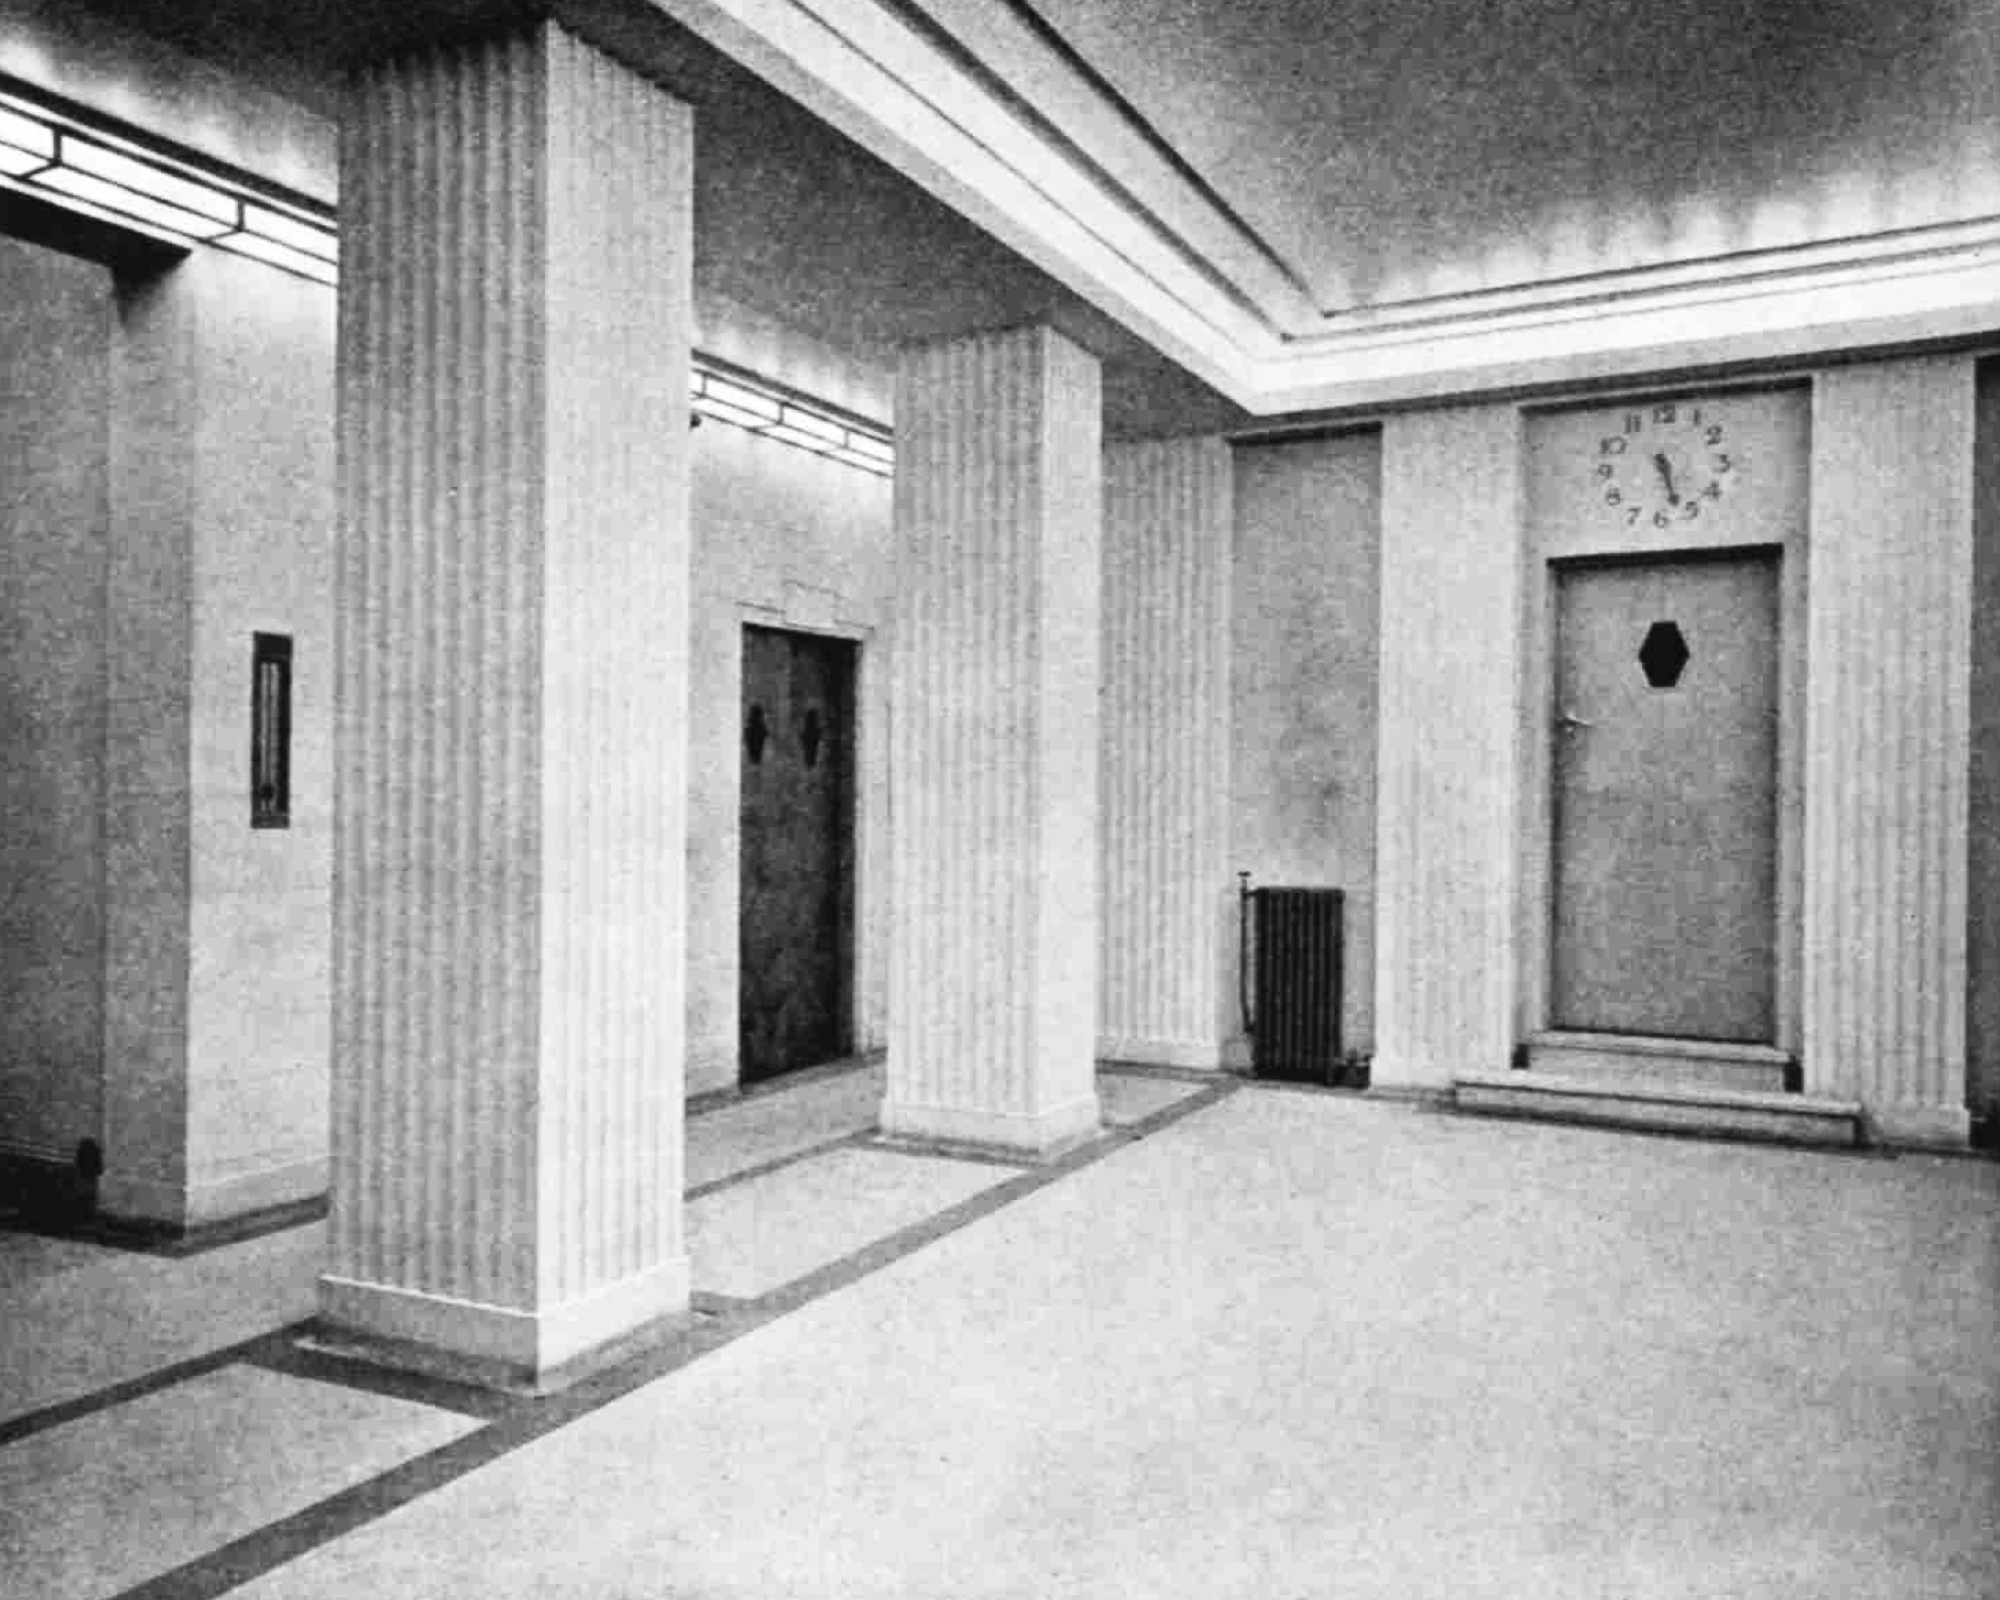 A bright open space with square pillars